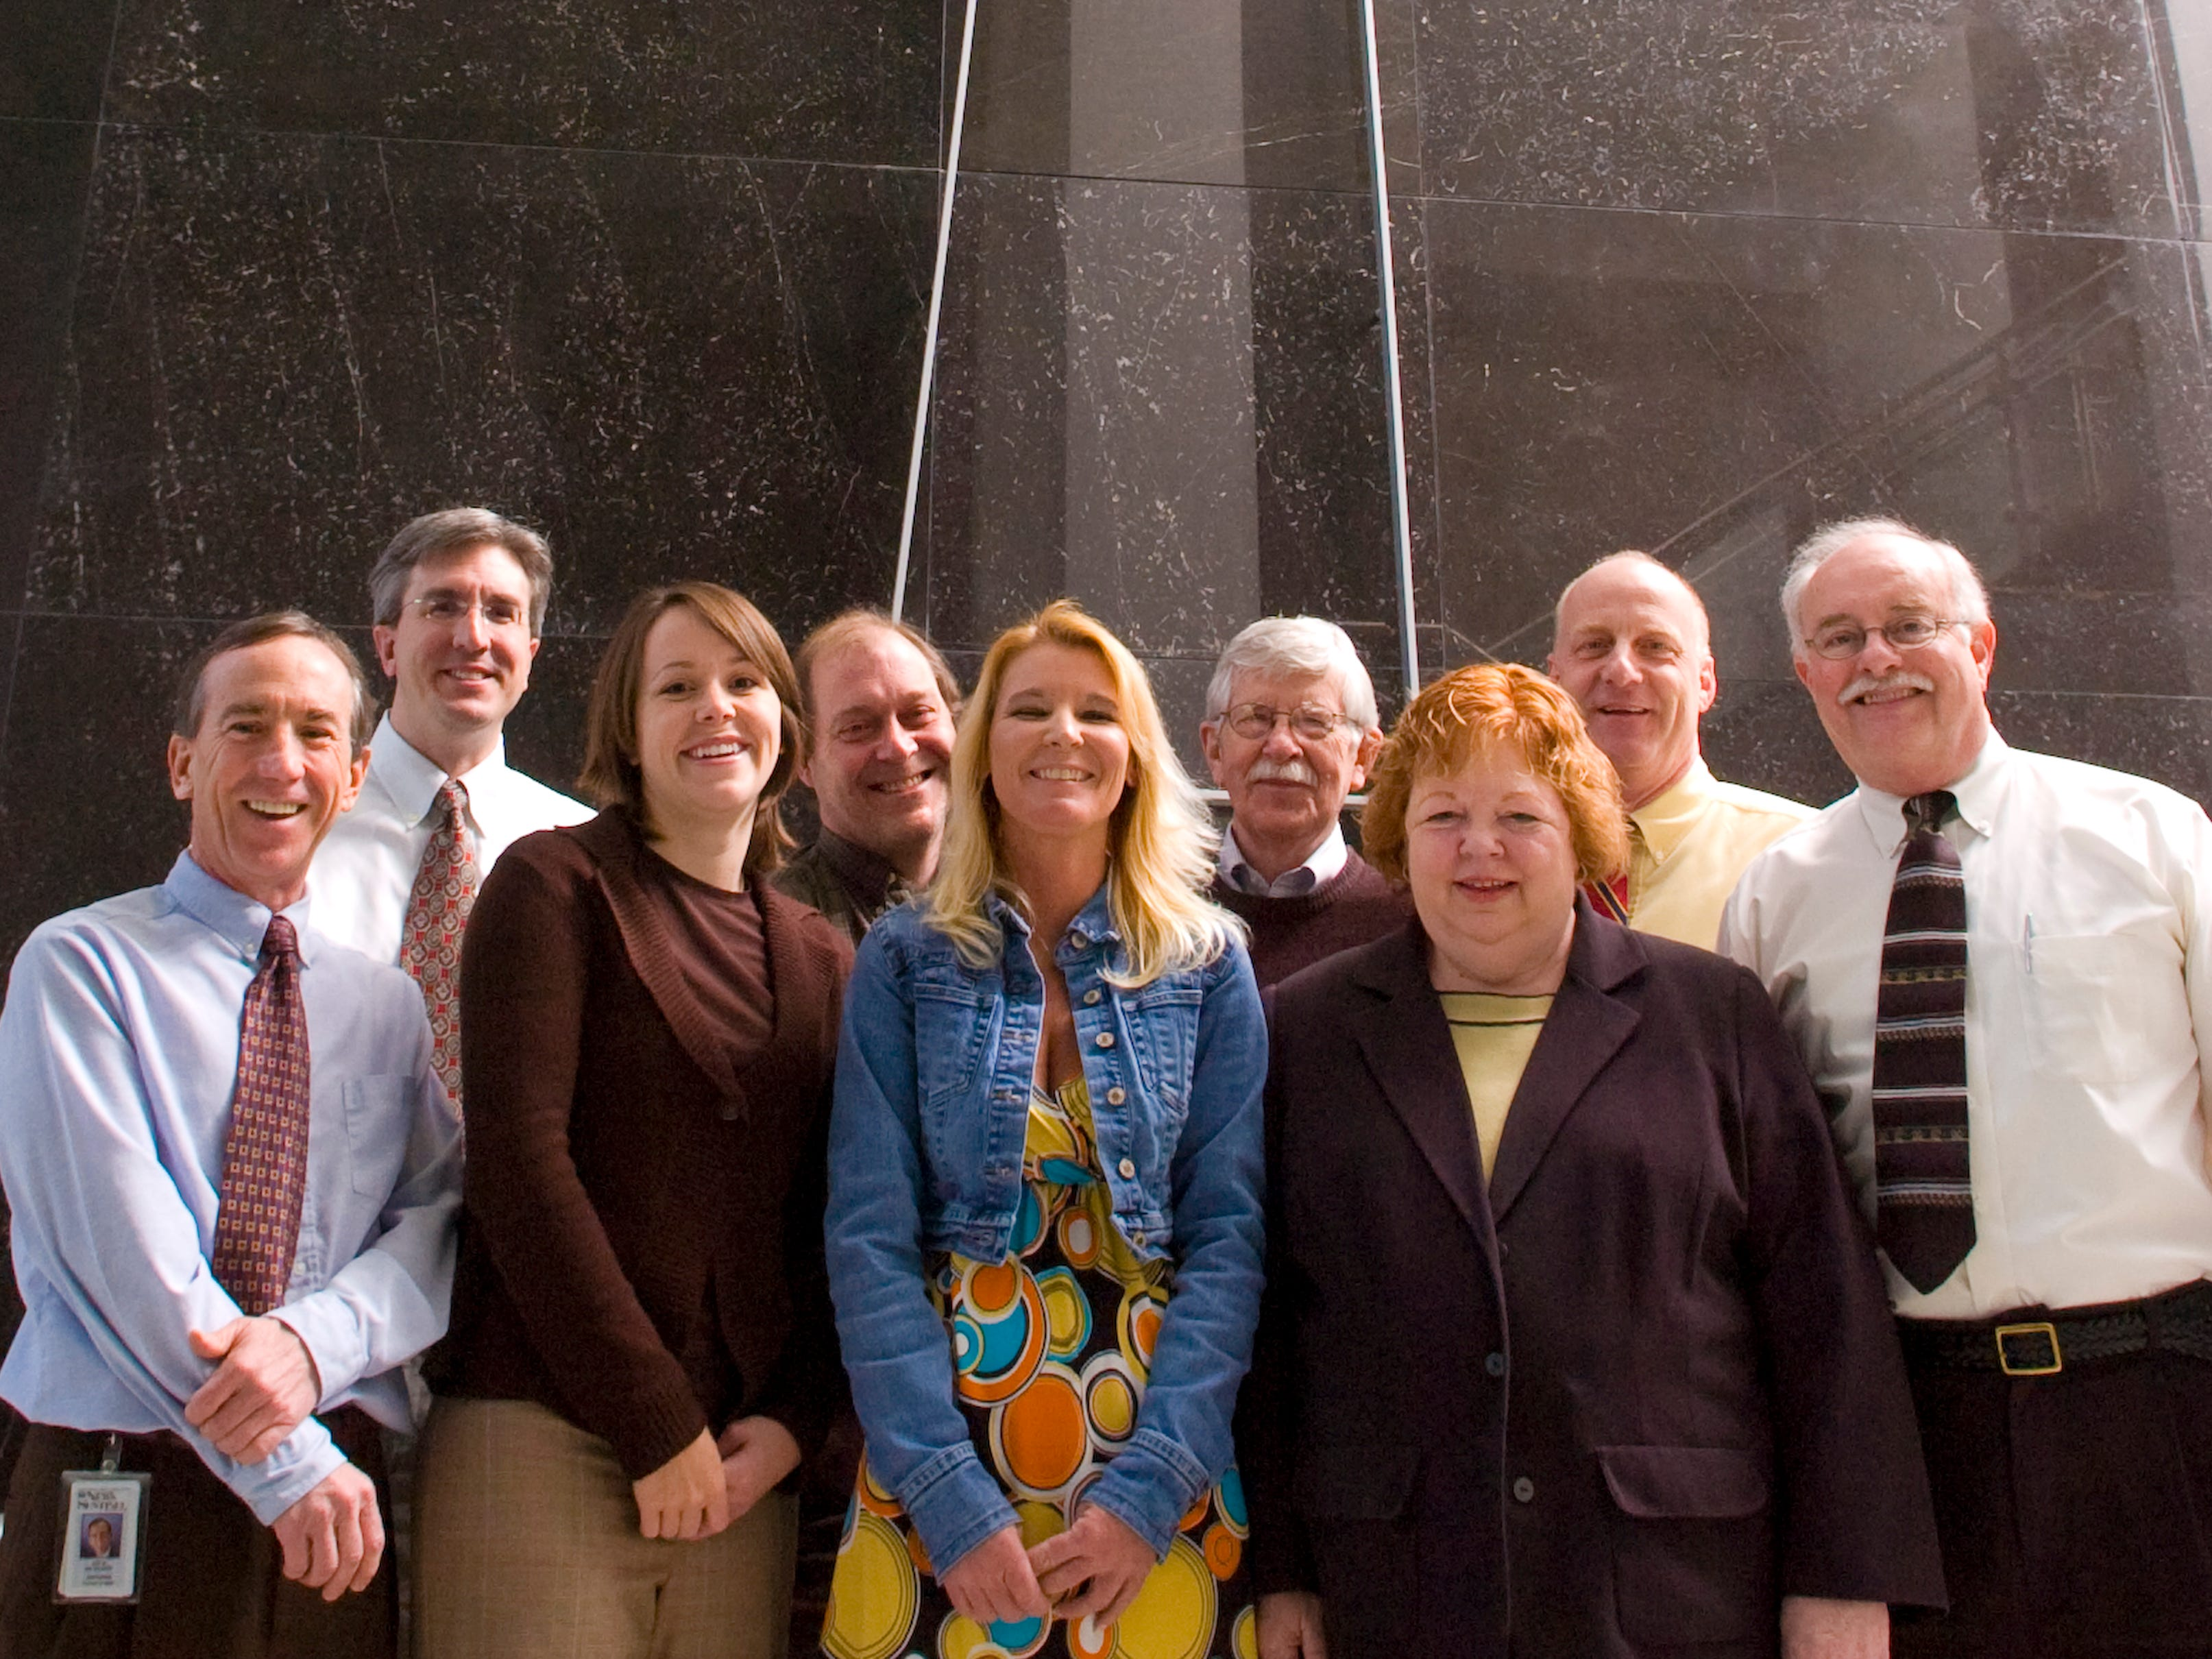 Members of the Knoxville News Sentinel, winners of the Scripps Howard Foundation National Journalism Awards competition are pictured March 10, 2008. L to R FRONT ROW: Jack McElroy, Editor; Ansley Haman, Reporter; Jamie Satterfield, Reporter; Rebecca Ferrar, Reporter, Hoyt Canady, Editorial Page Editor. BACK ROW: David Keim, AME News; Scott Barker, Reporter; Charlie Daniel, Editorial Cartoonist; Bruce Hartmann, Publisher.